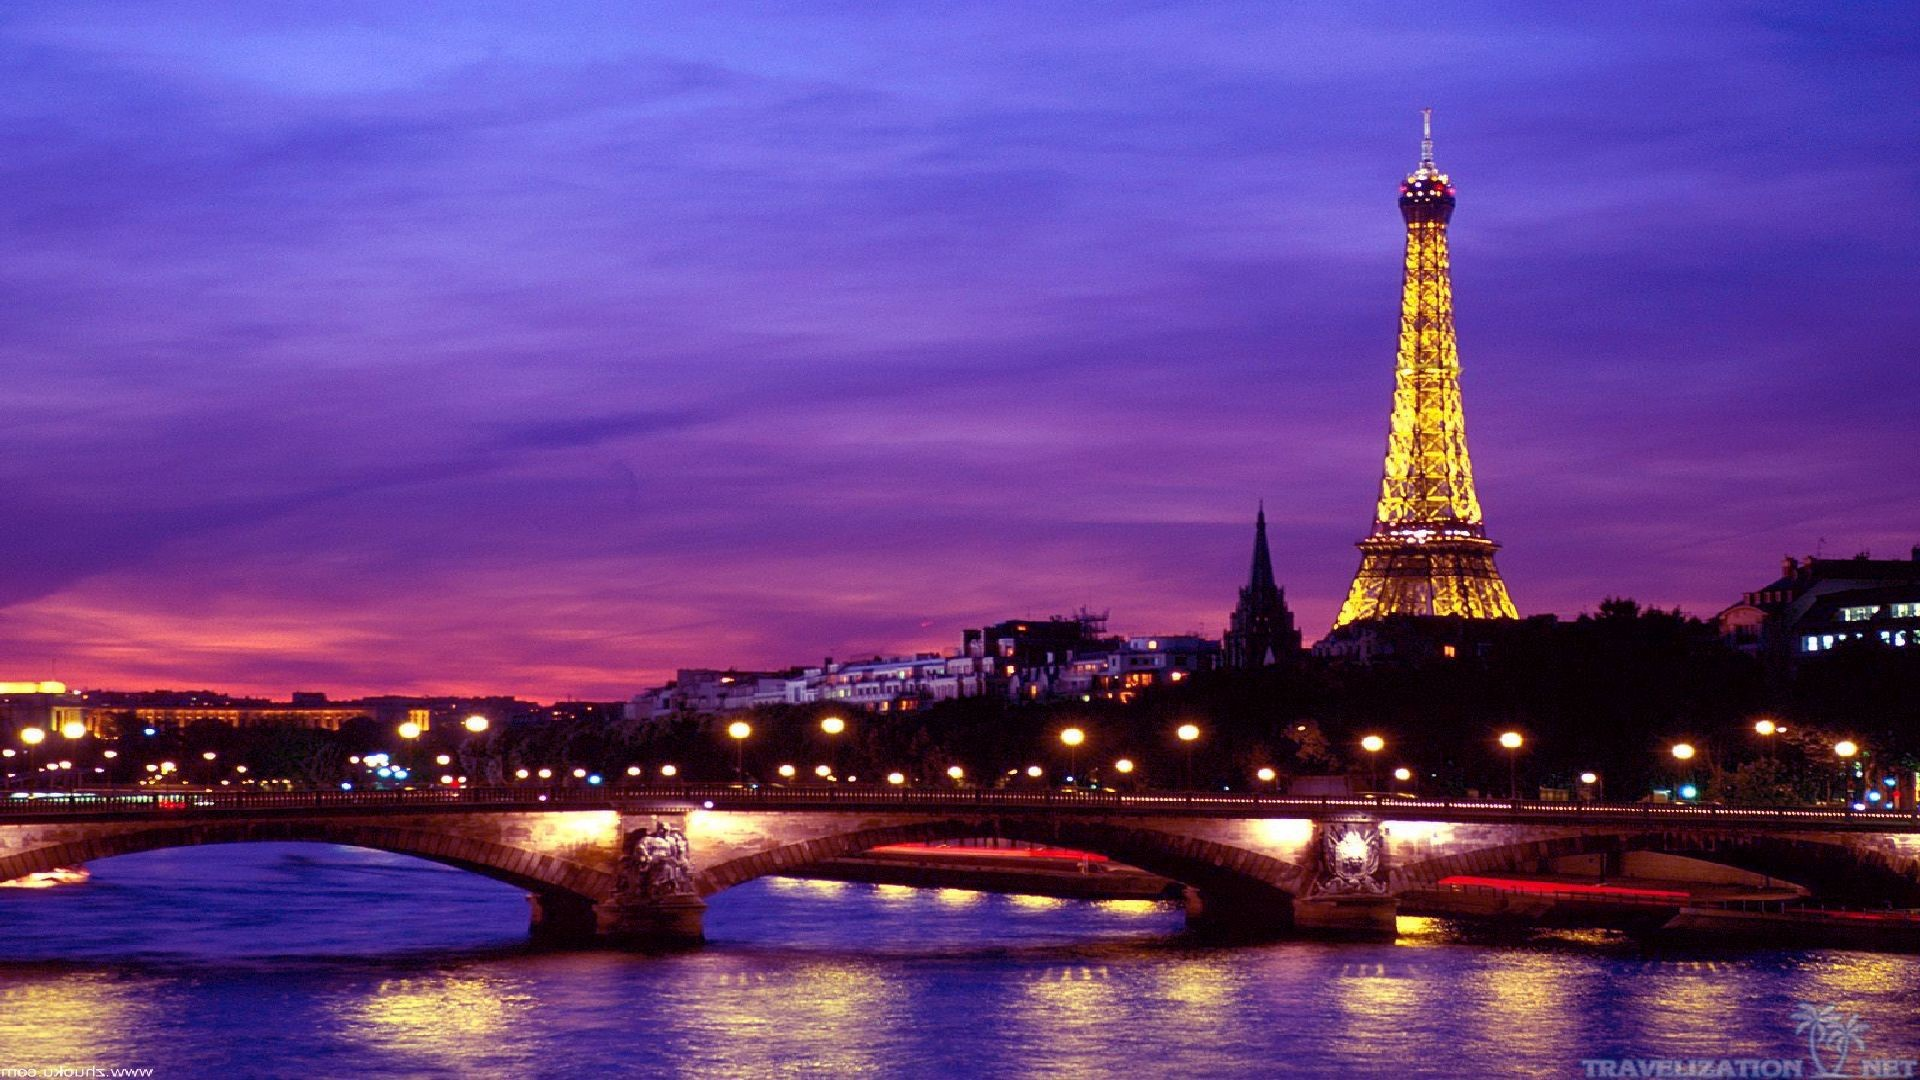 1920x1080 undefined Eiffel Tower Pictures Wallpapers (44 Wallpapers) | Adorable  Wallpapers